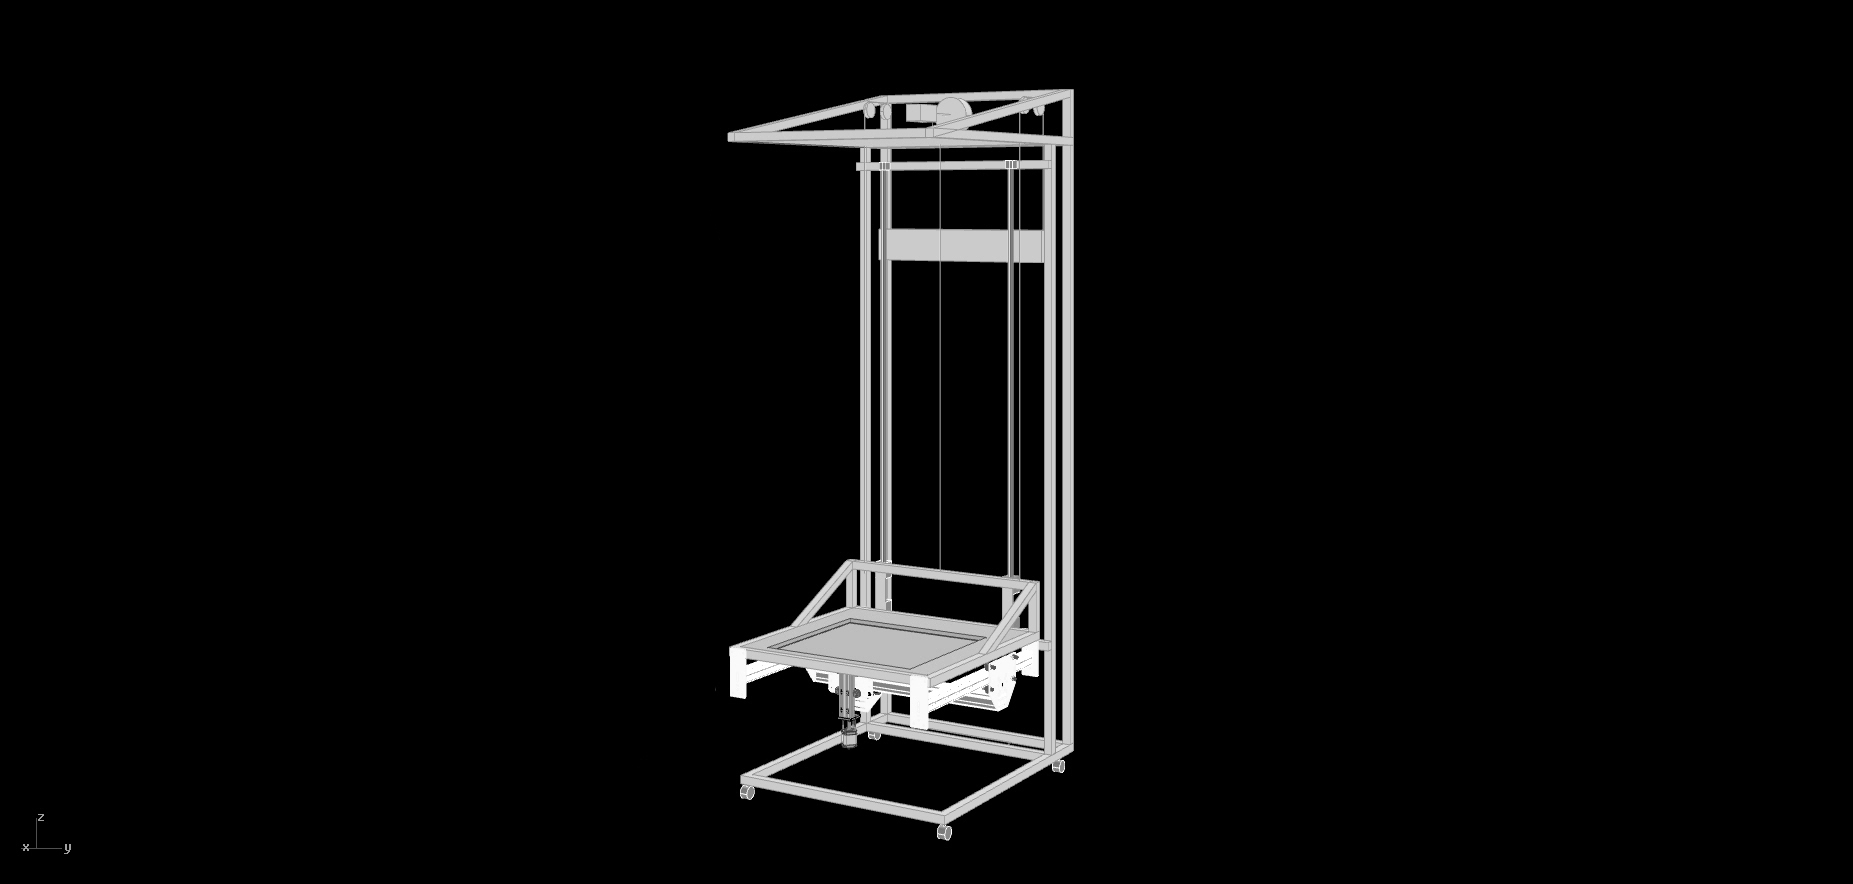 Picture of Machine: the Frame and Build Plate